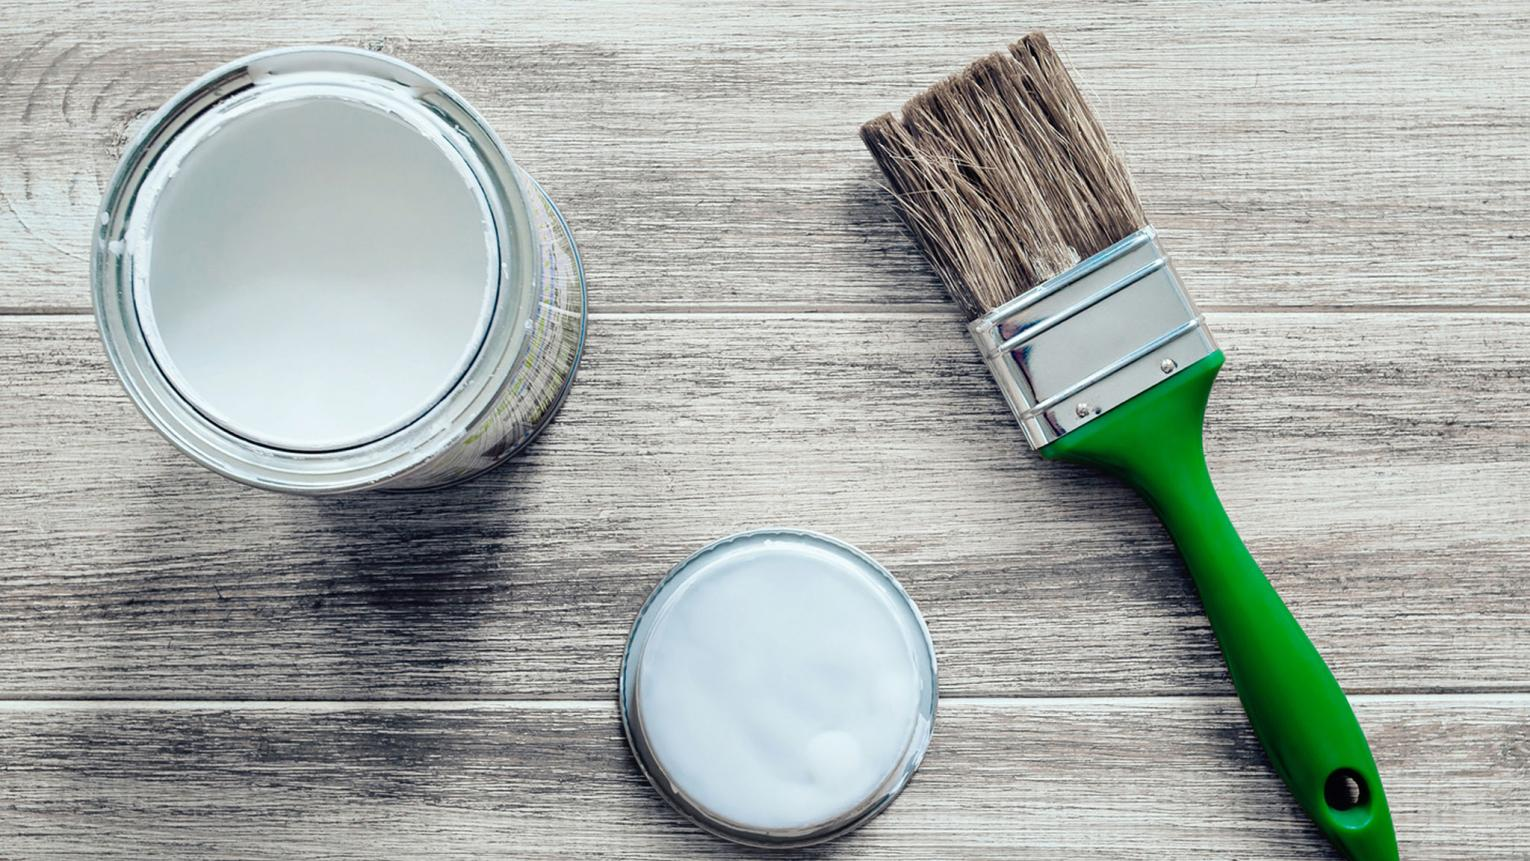 Getting ready to paint? A good quality paintbrush is your secret weapon to a perfect finish. Learn how to pick the best brush for the job.